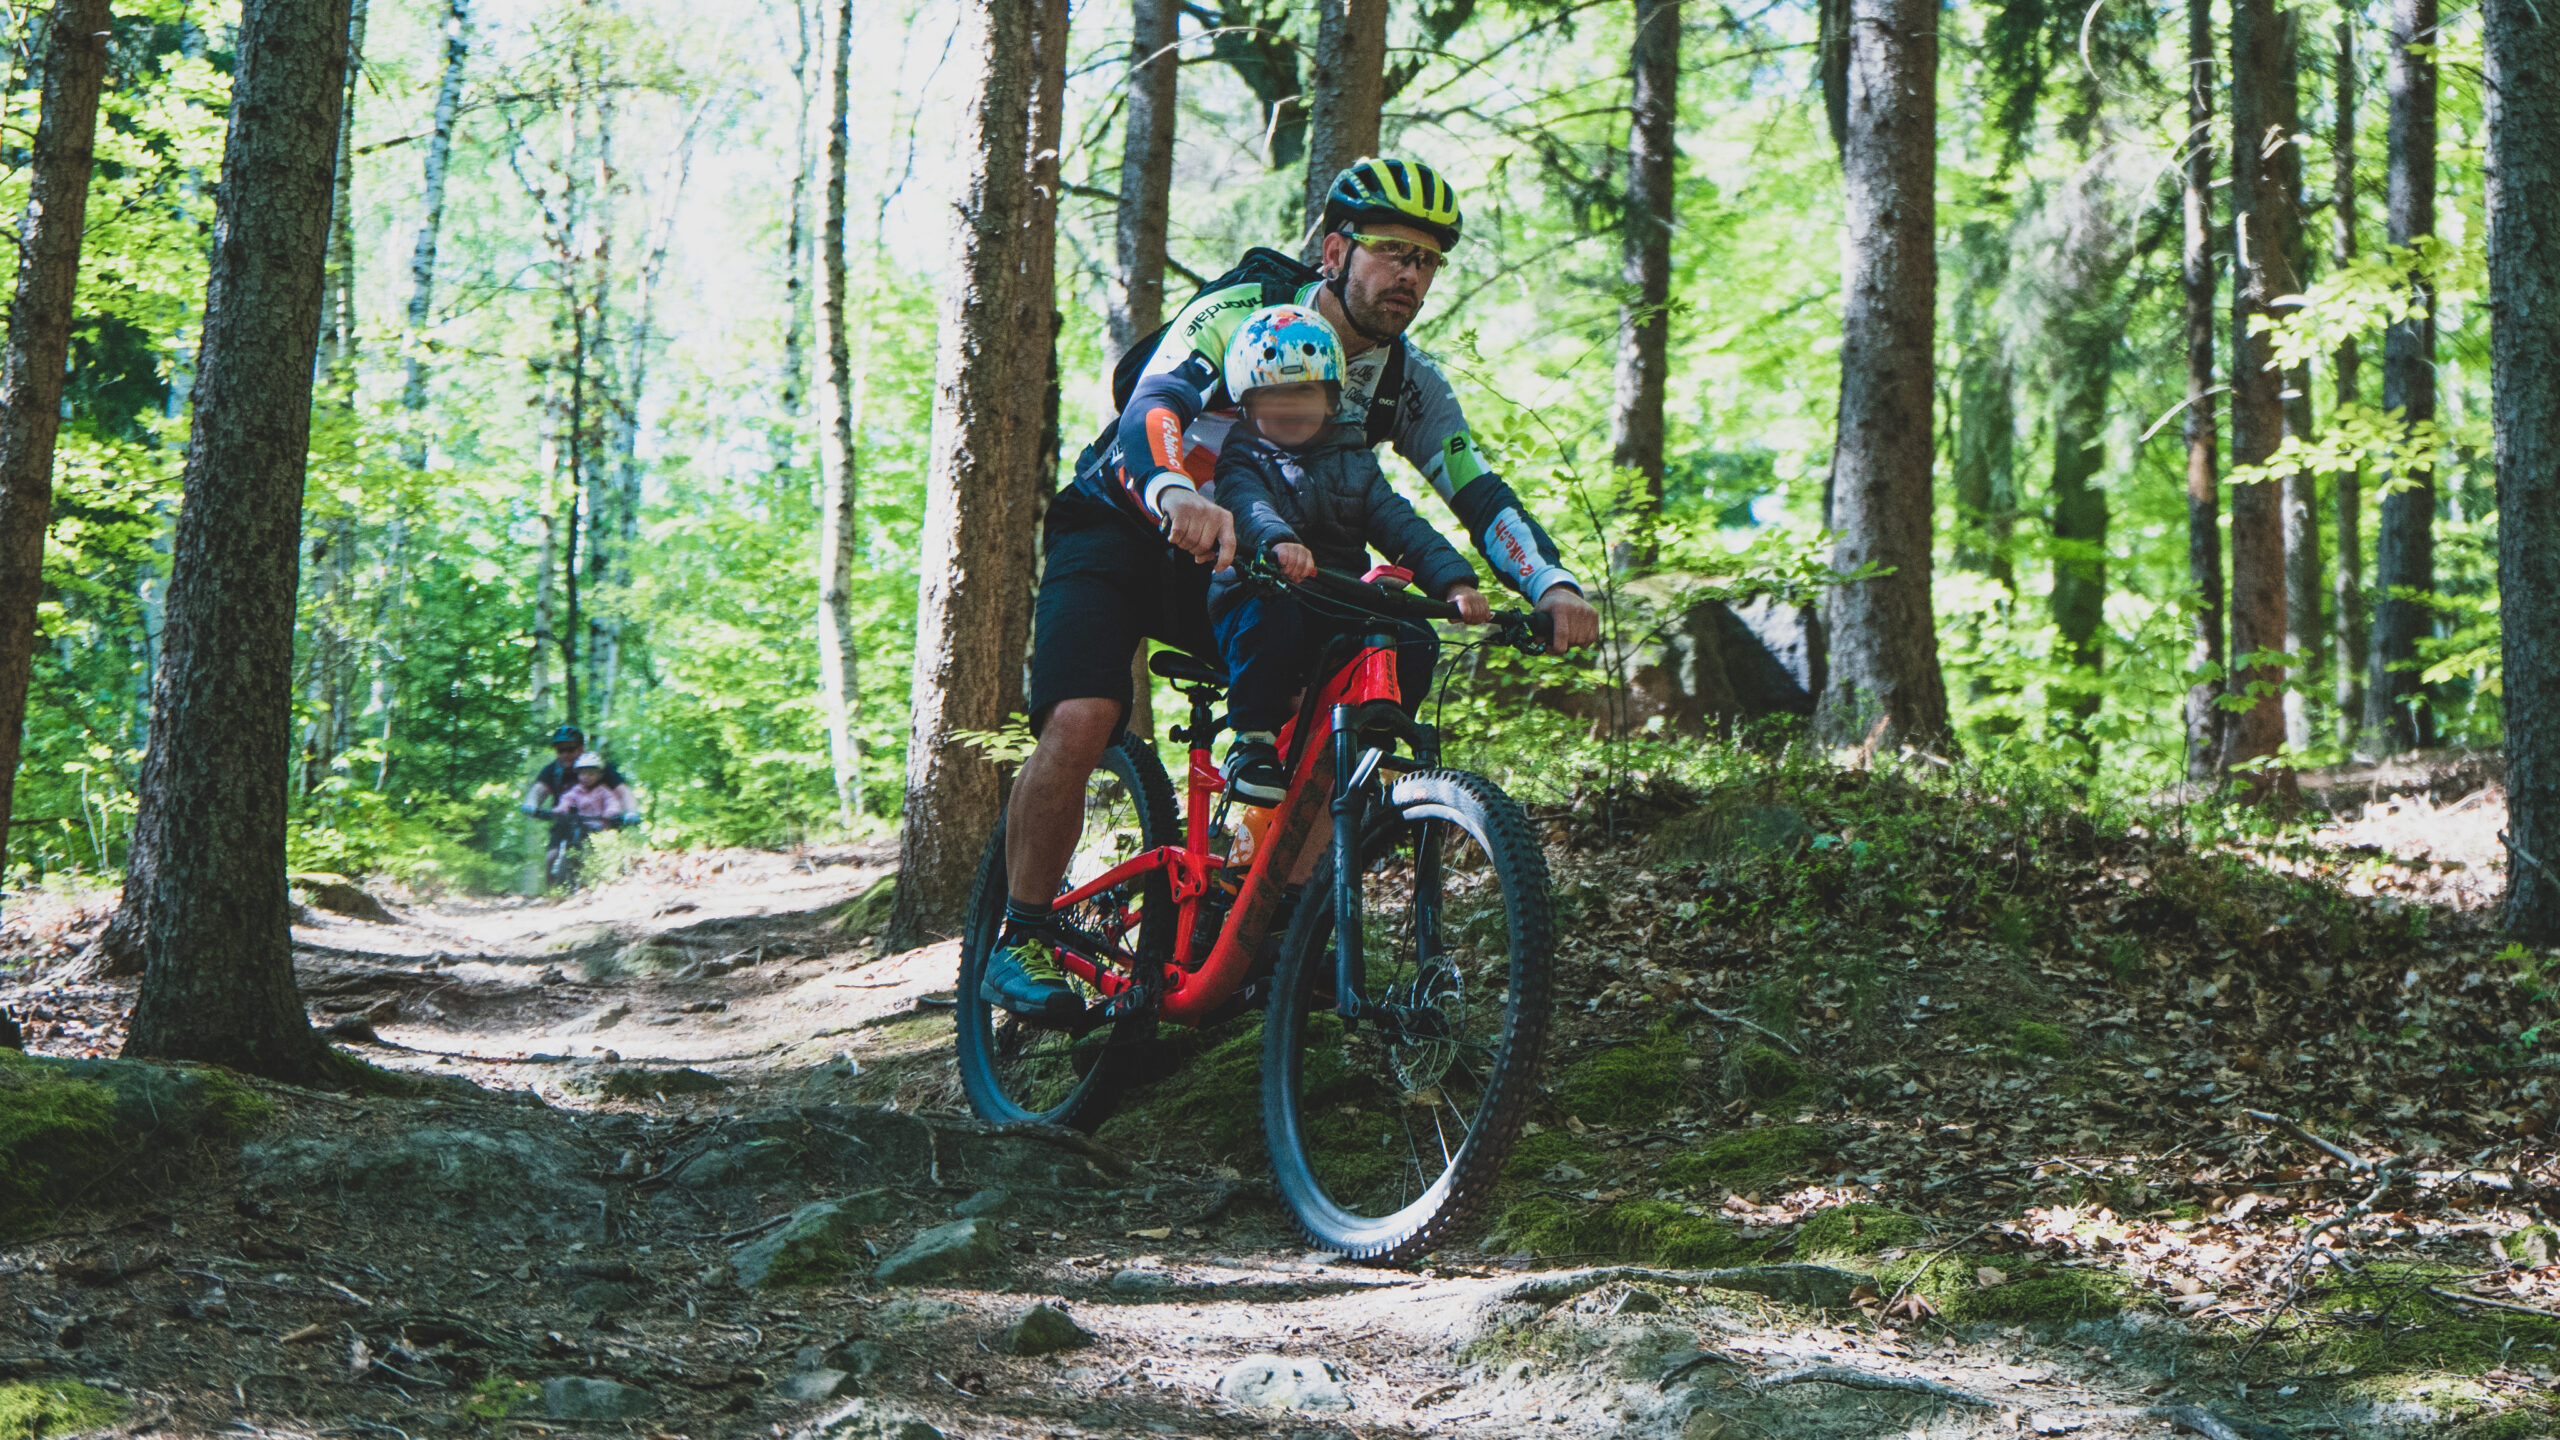 Macs Ride Kindersitz für das MTB in Action